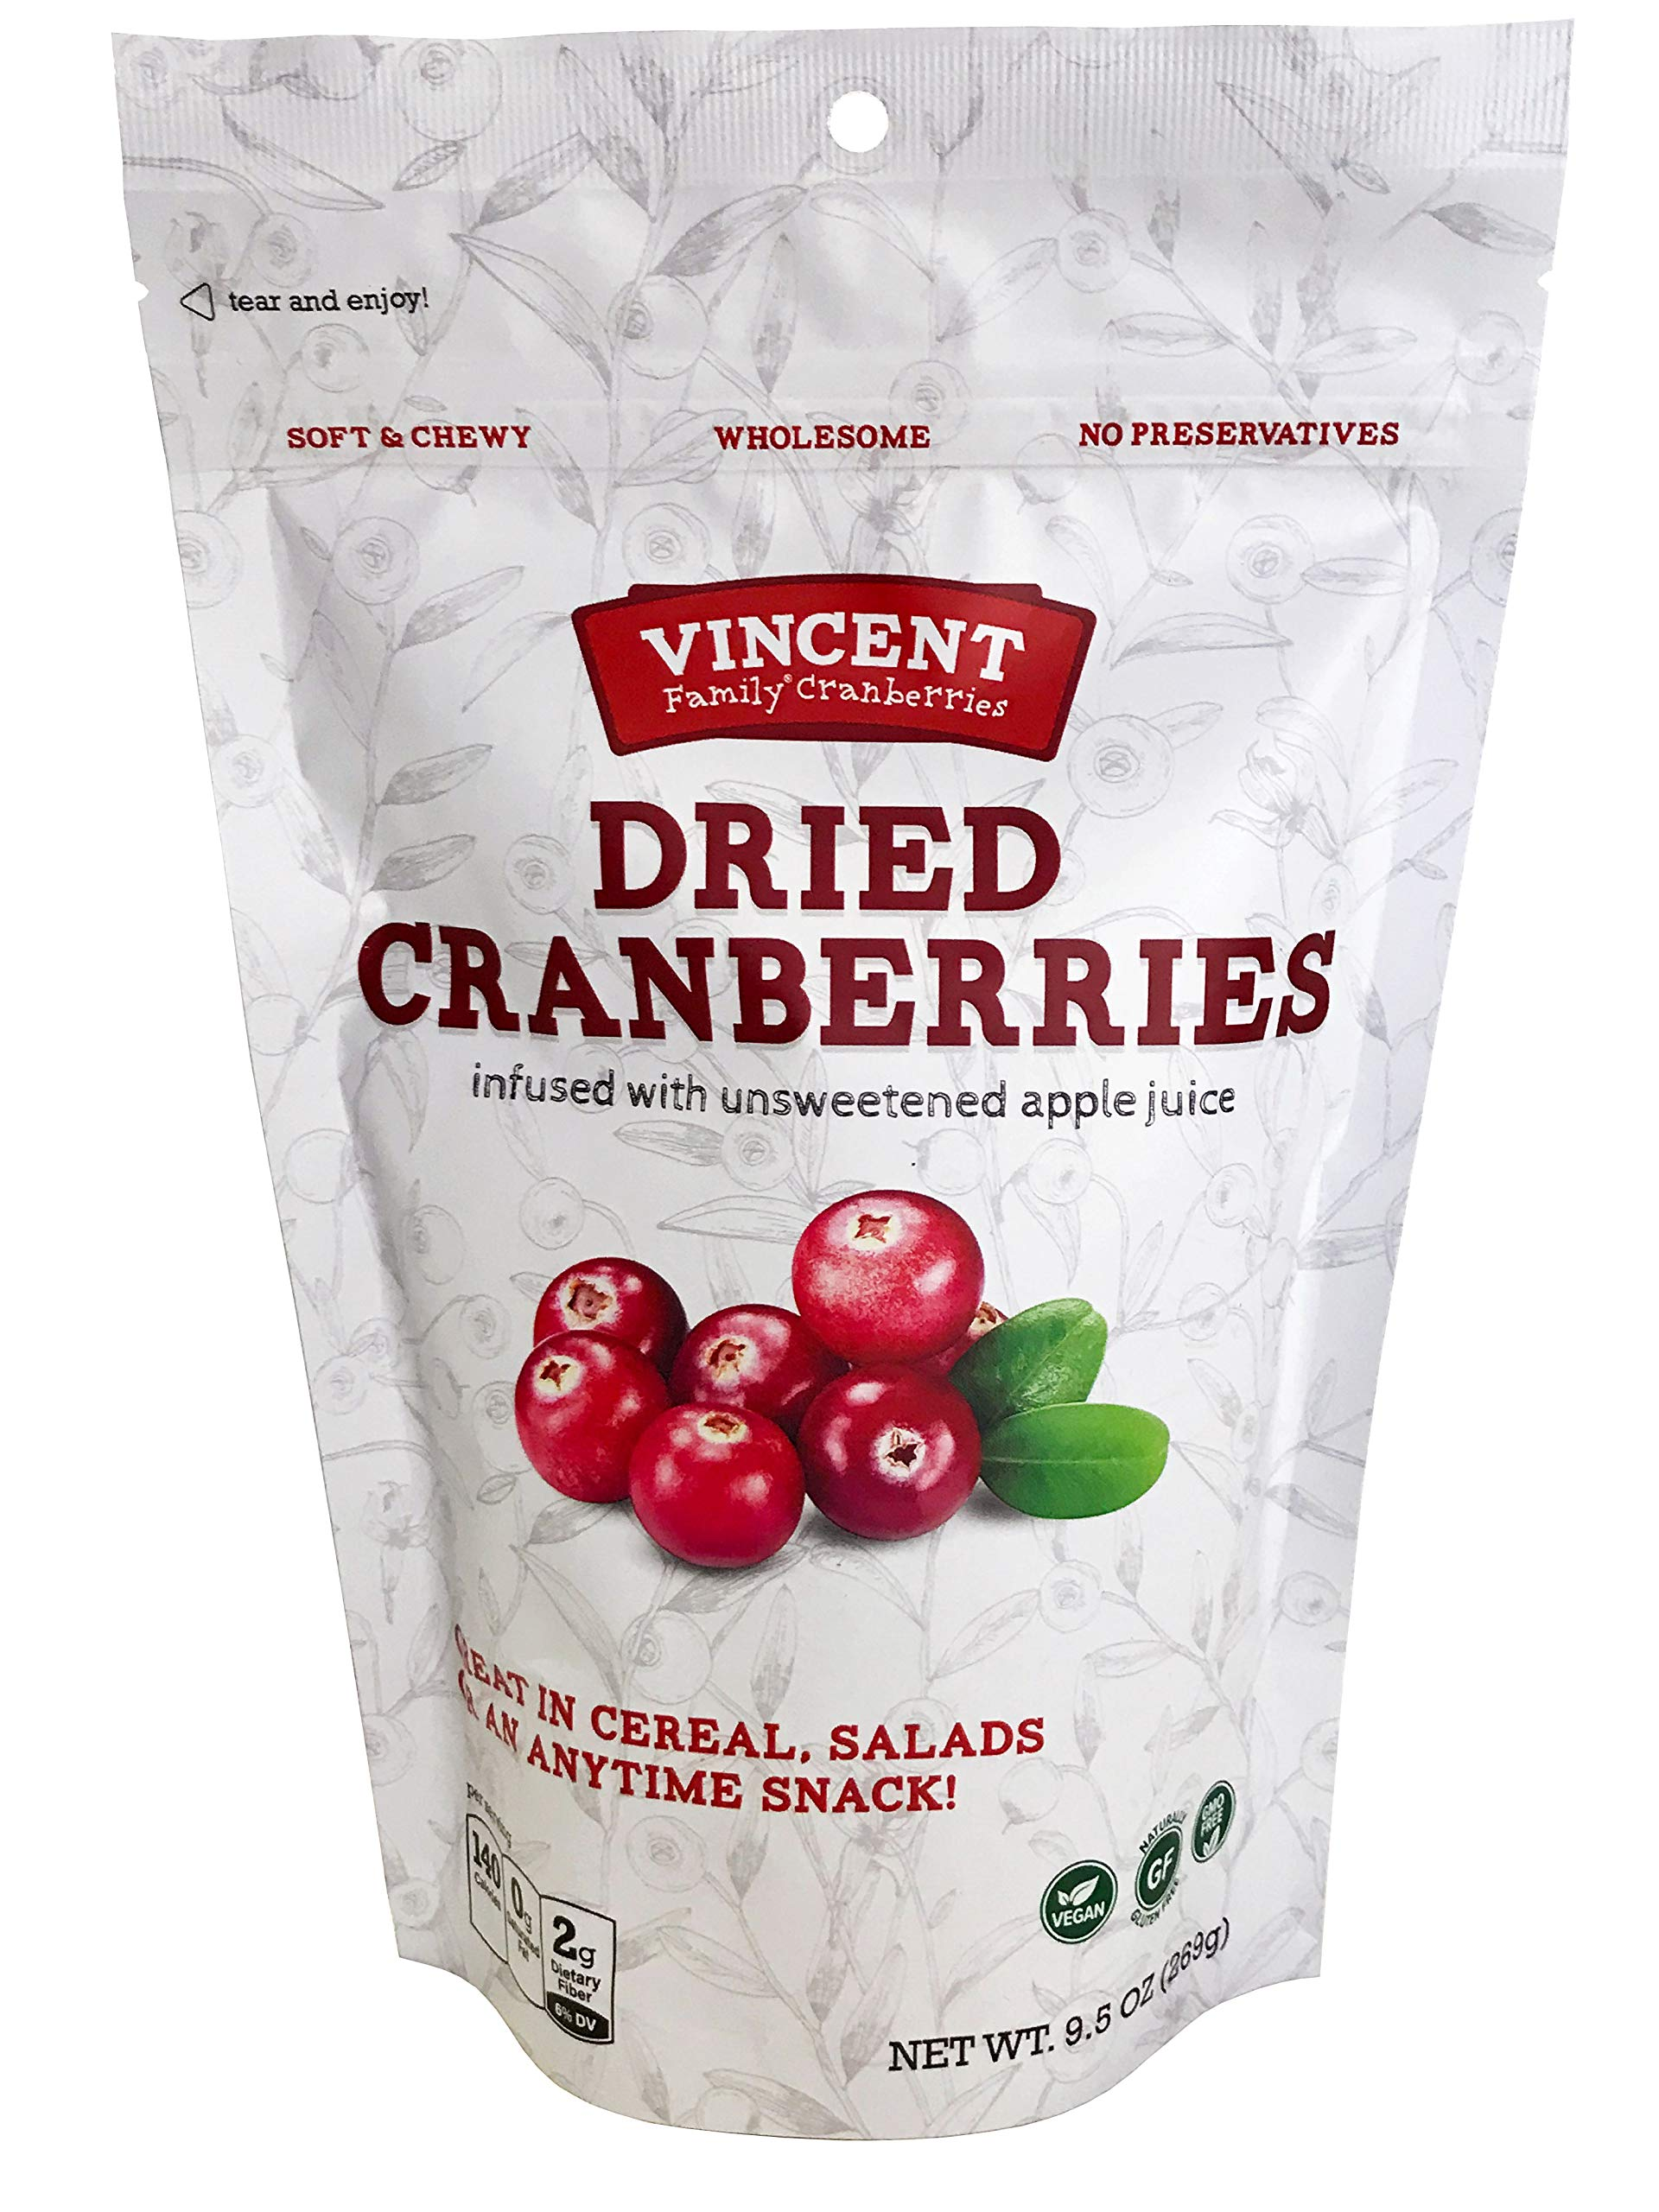 Vincent Family Dried Cranberries Infused with Unsweetened Apple Juice, 9.5 Ounce by Vincent Family Cranberries